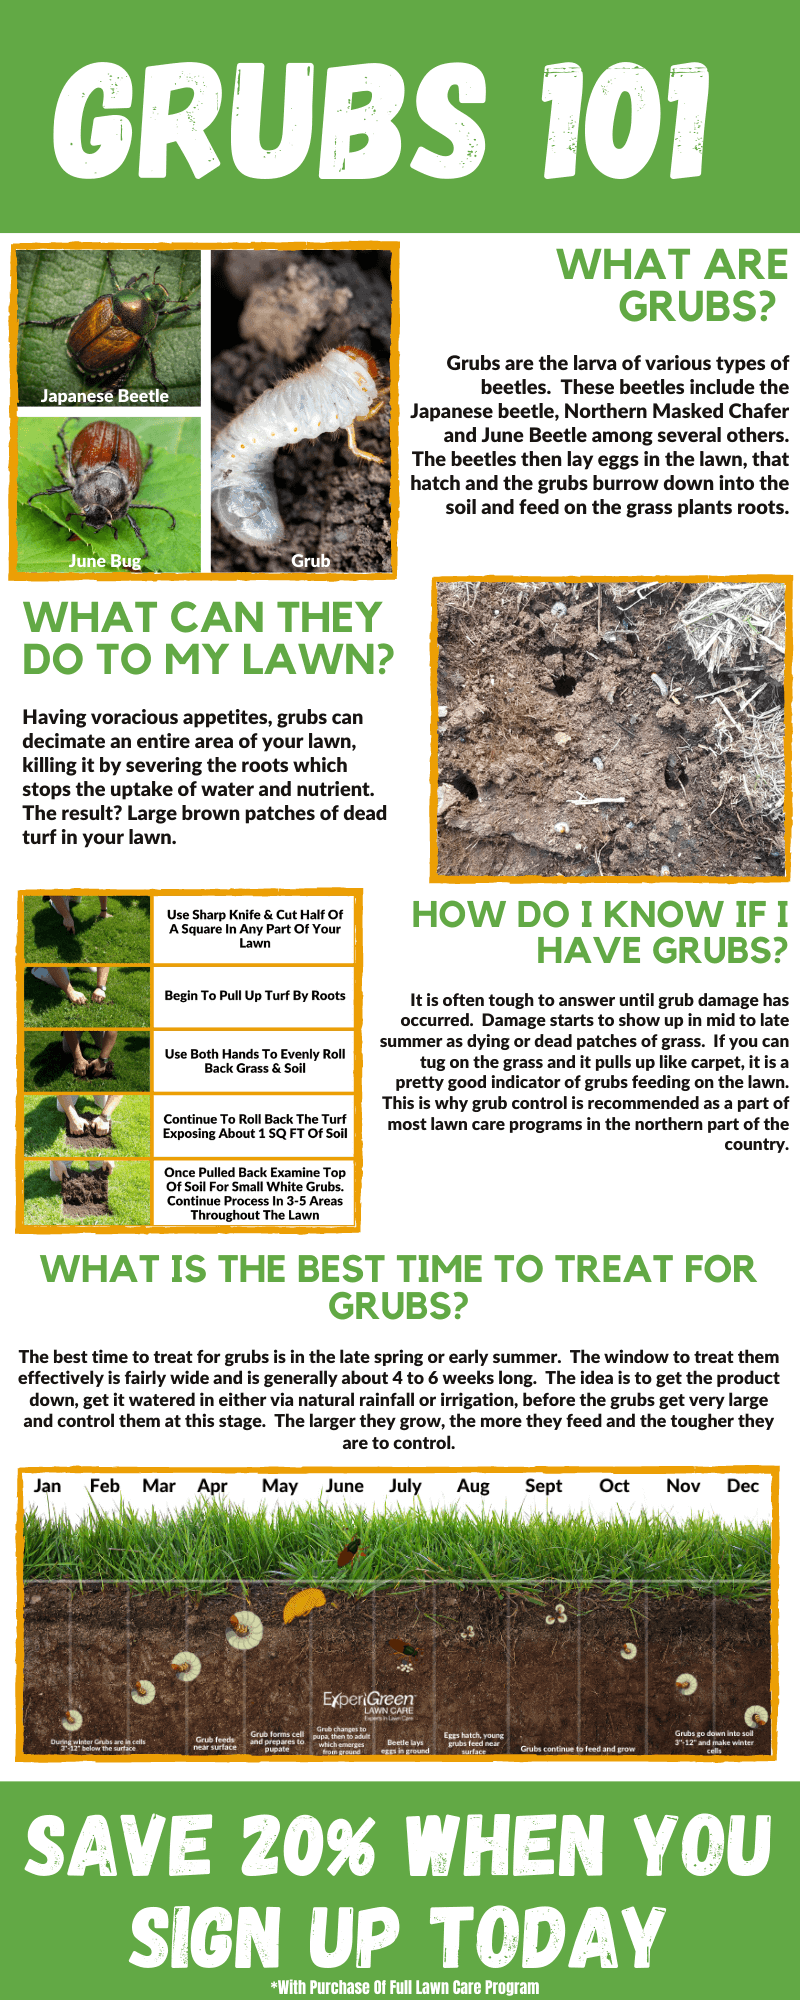 Grubs 101- Everything You Need To Know